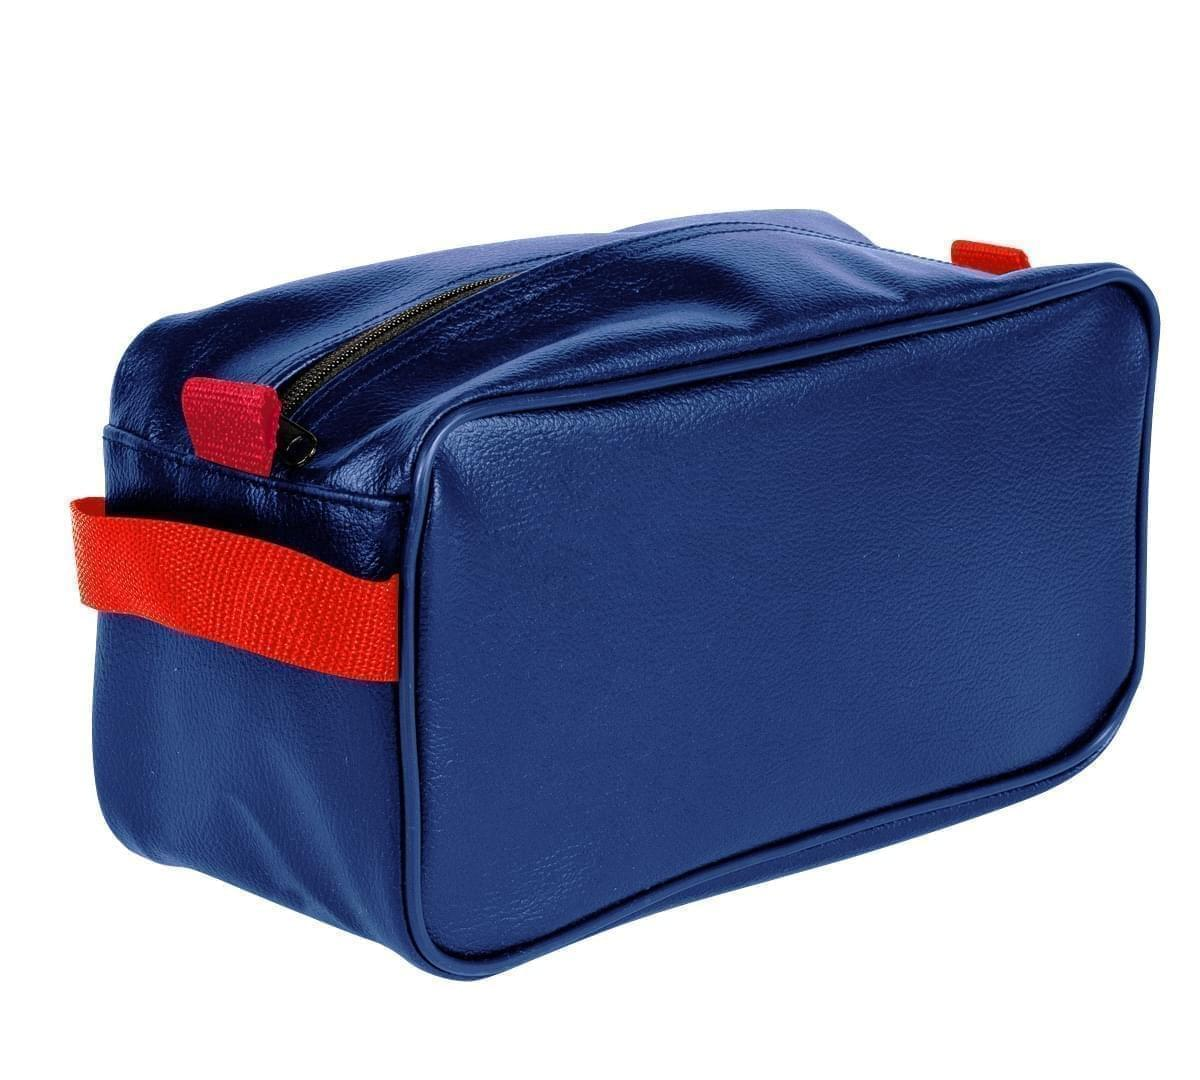 USA Made Cosmetic & Toiletry Cases, Royal Blue-Red, 3000996-A02